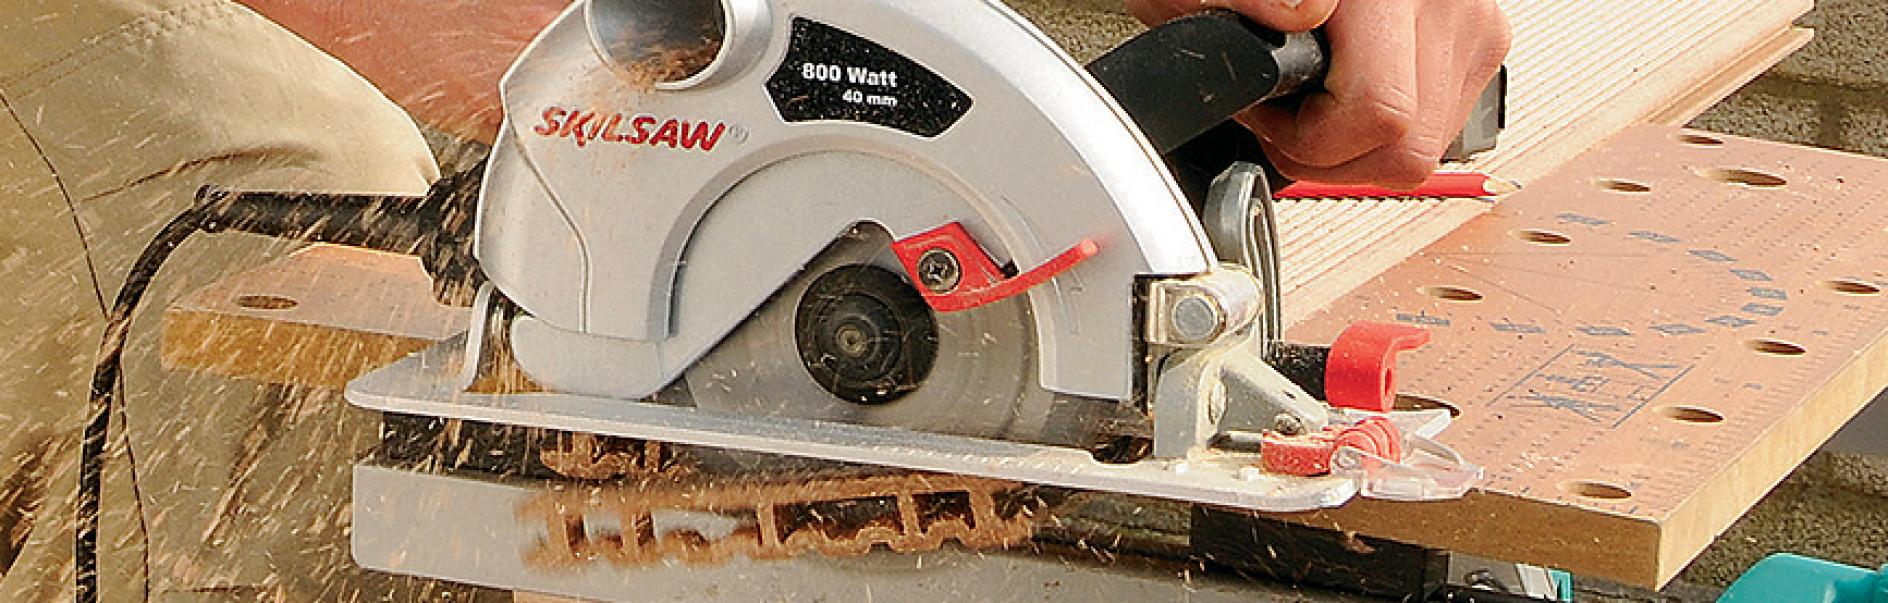 How to change a circular saw blade circular saw keyboard keysfo Image collections